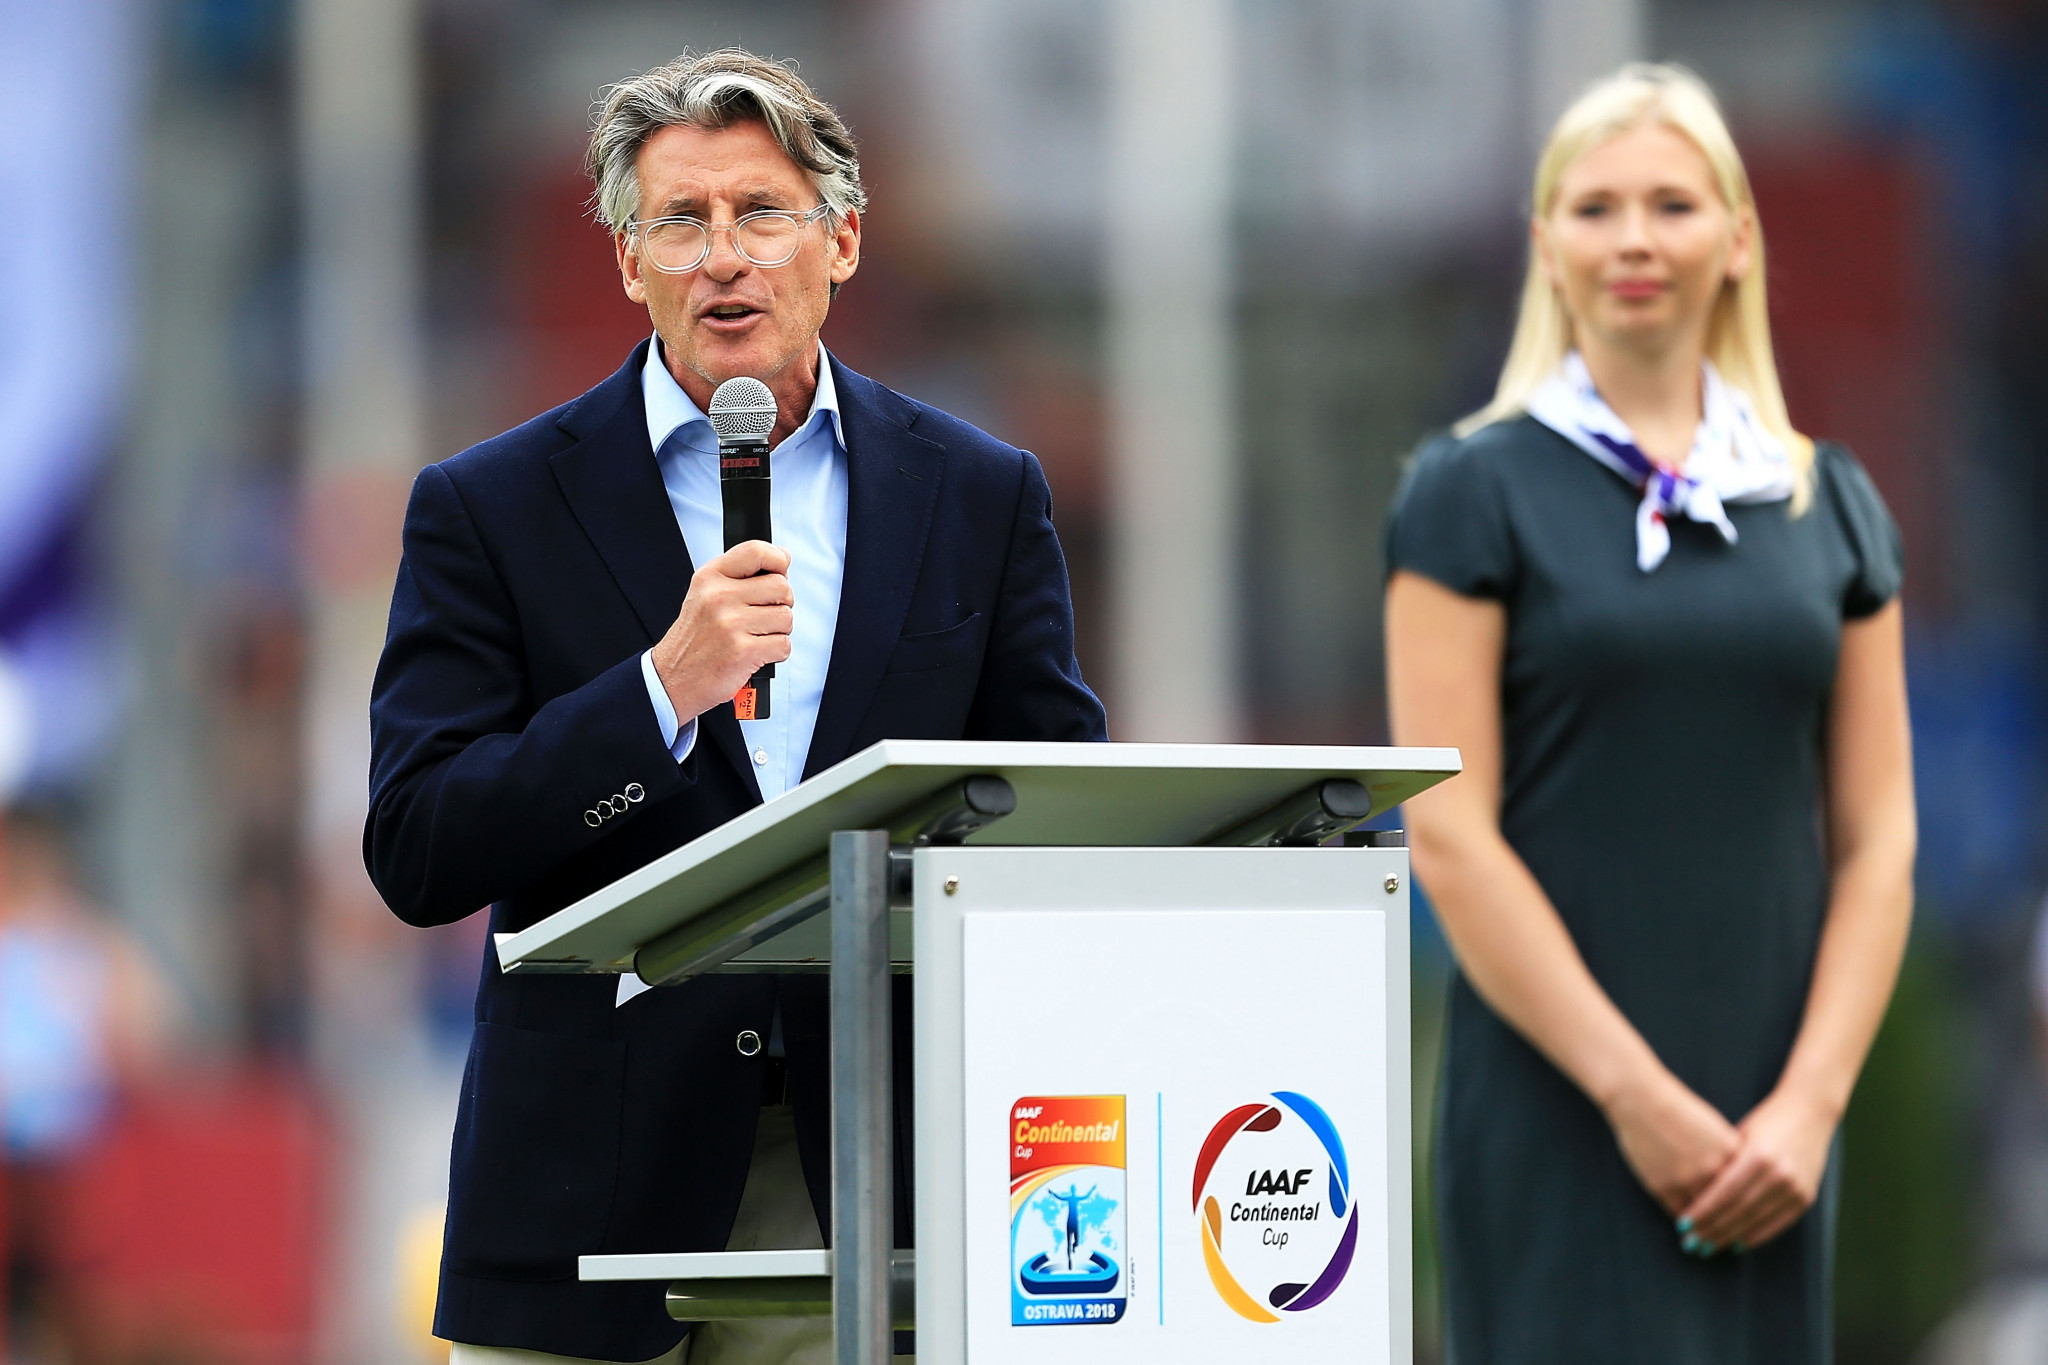 IAAF President Sebastian Coe hopes the Youth Olympics will provide a step towards cross-country being included in the full Olympic programme ©Getty Images